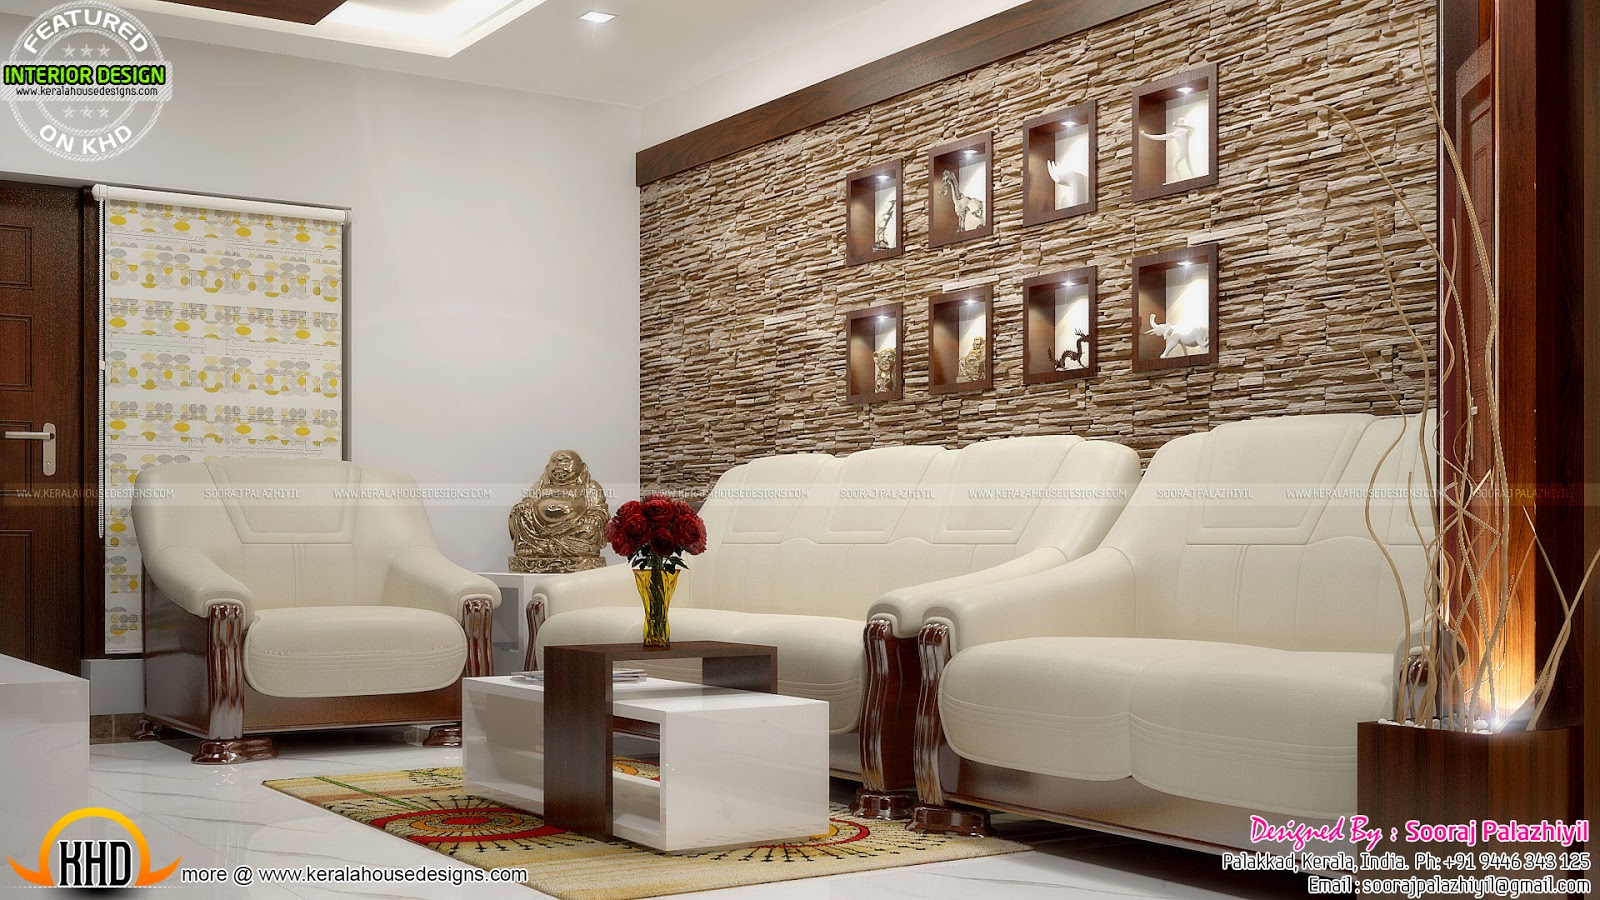 Simple apartment interior in kerala kerala home design for Kerala house living room interior design